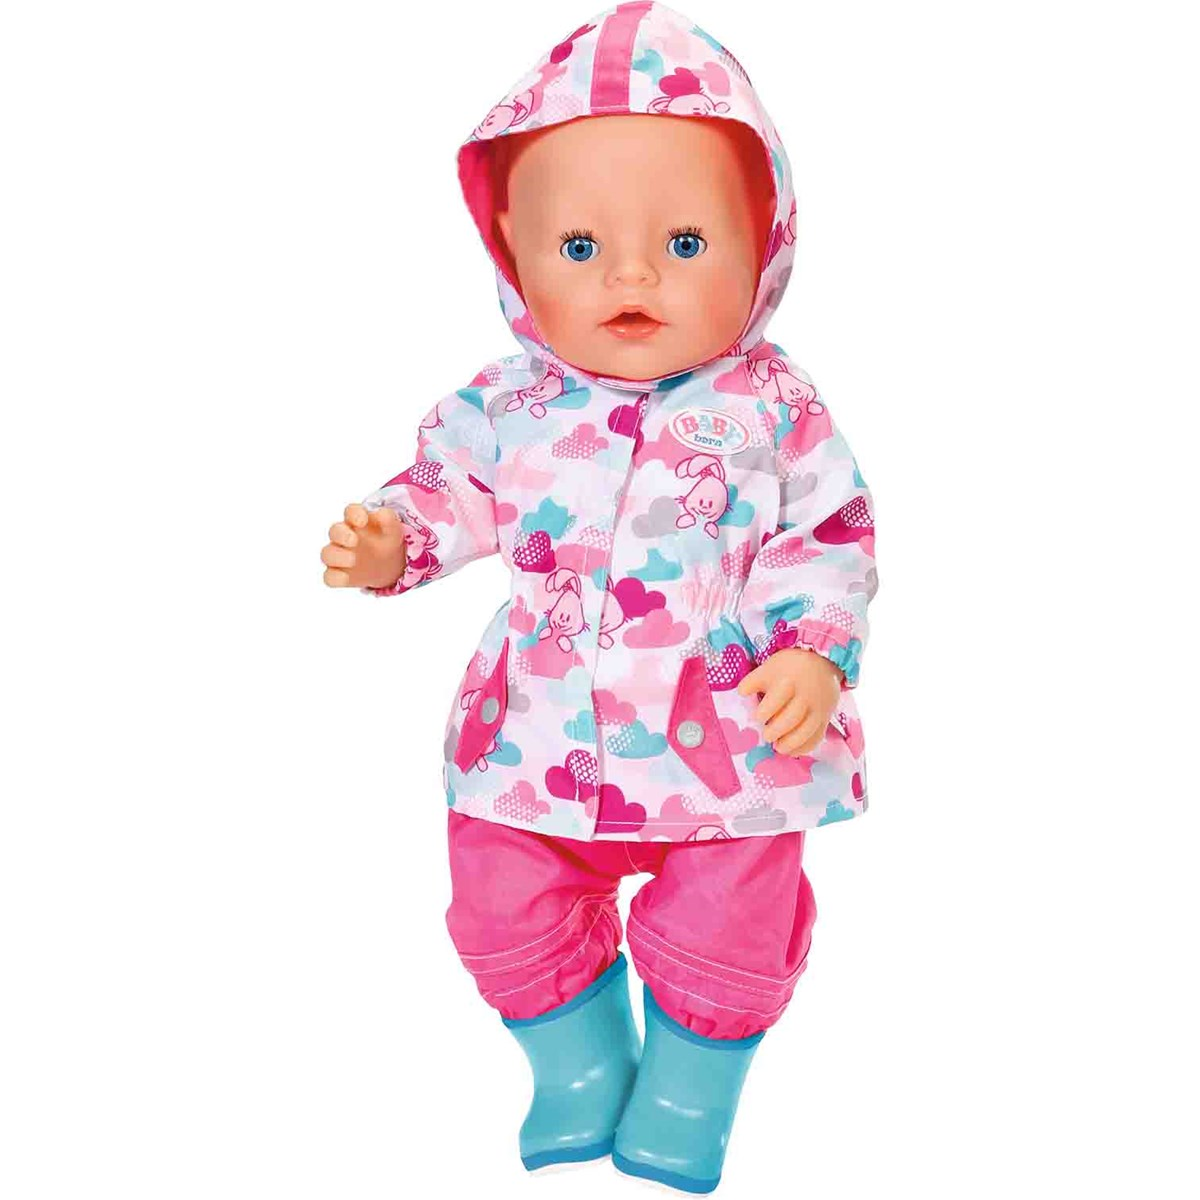 4935afe21 Baby Born Deluxe Fun in the Rain Outfit